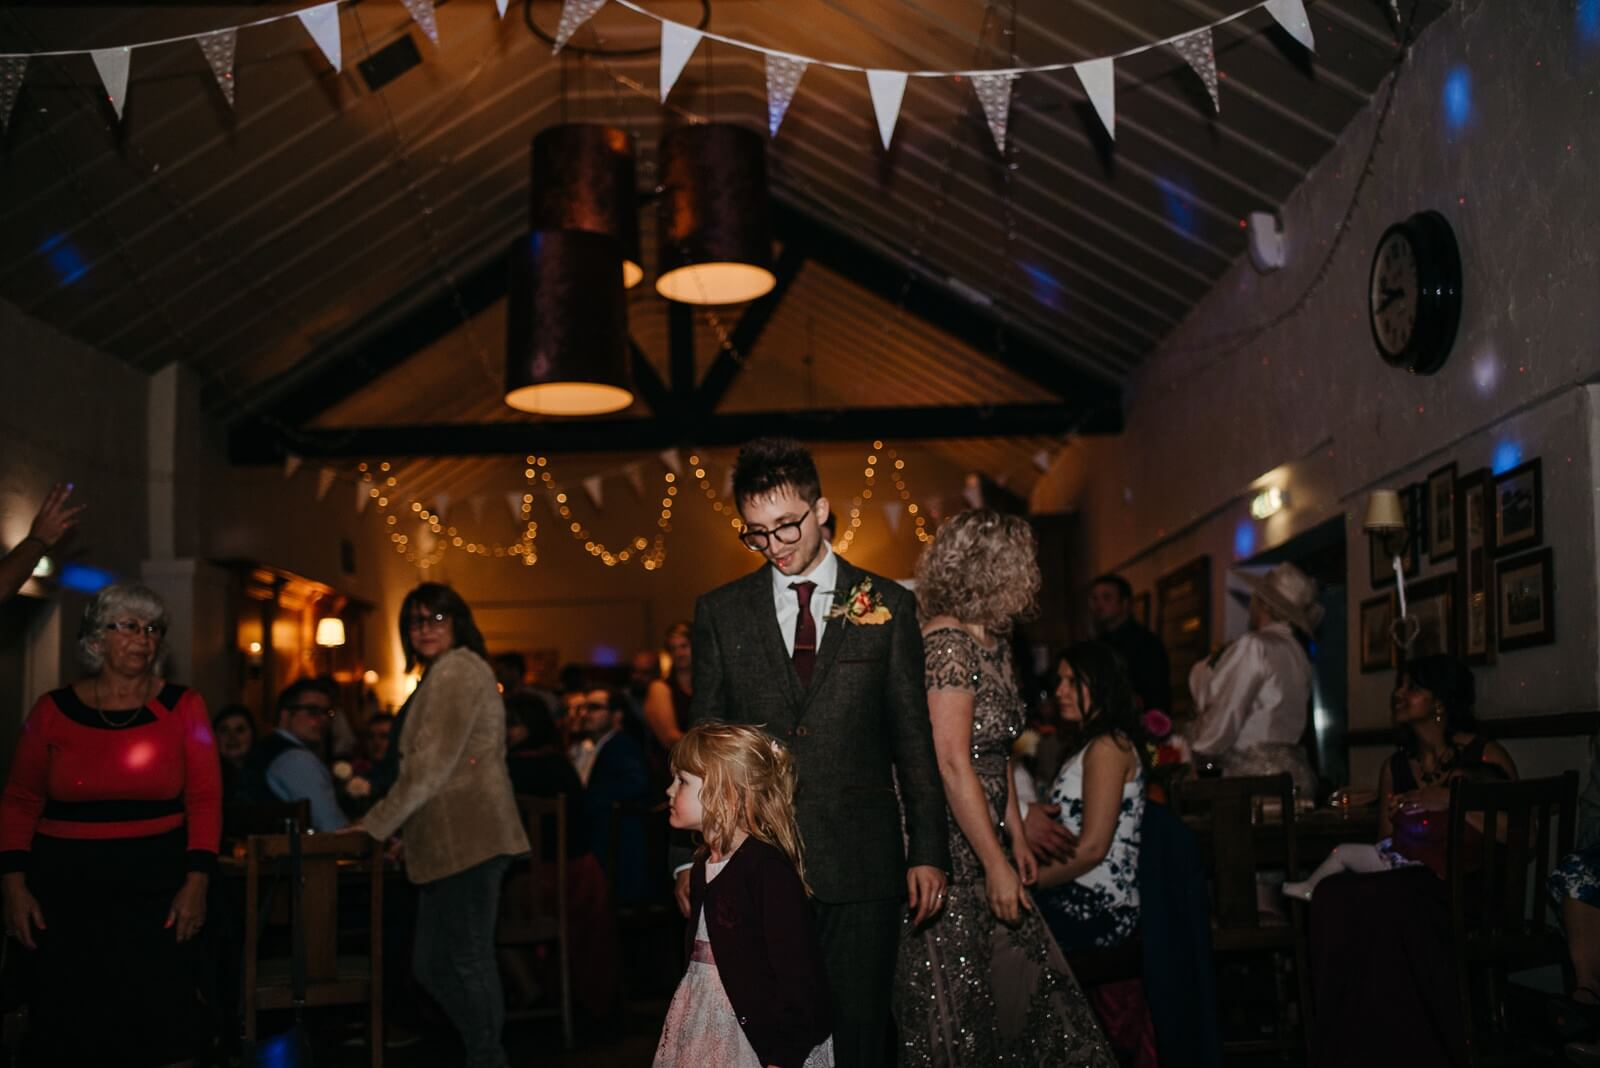 Bride and Groom take to the dance floor at their wedding at Ty Mawr on the outskirts of Cardiff